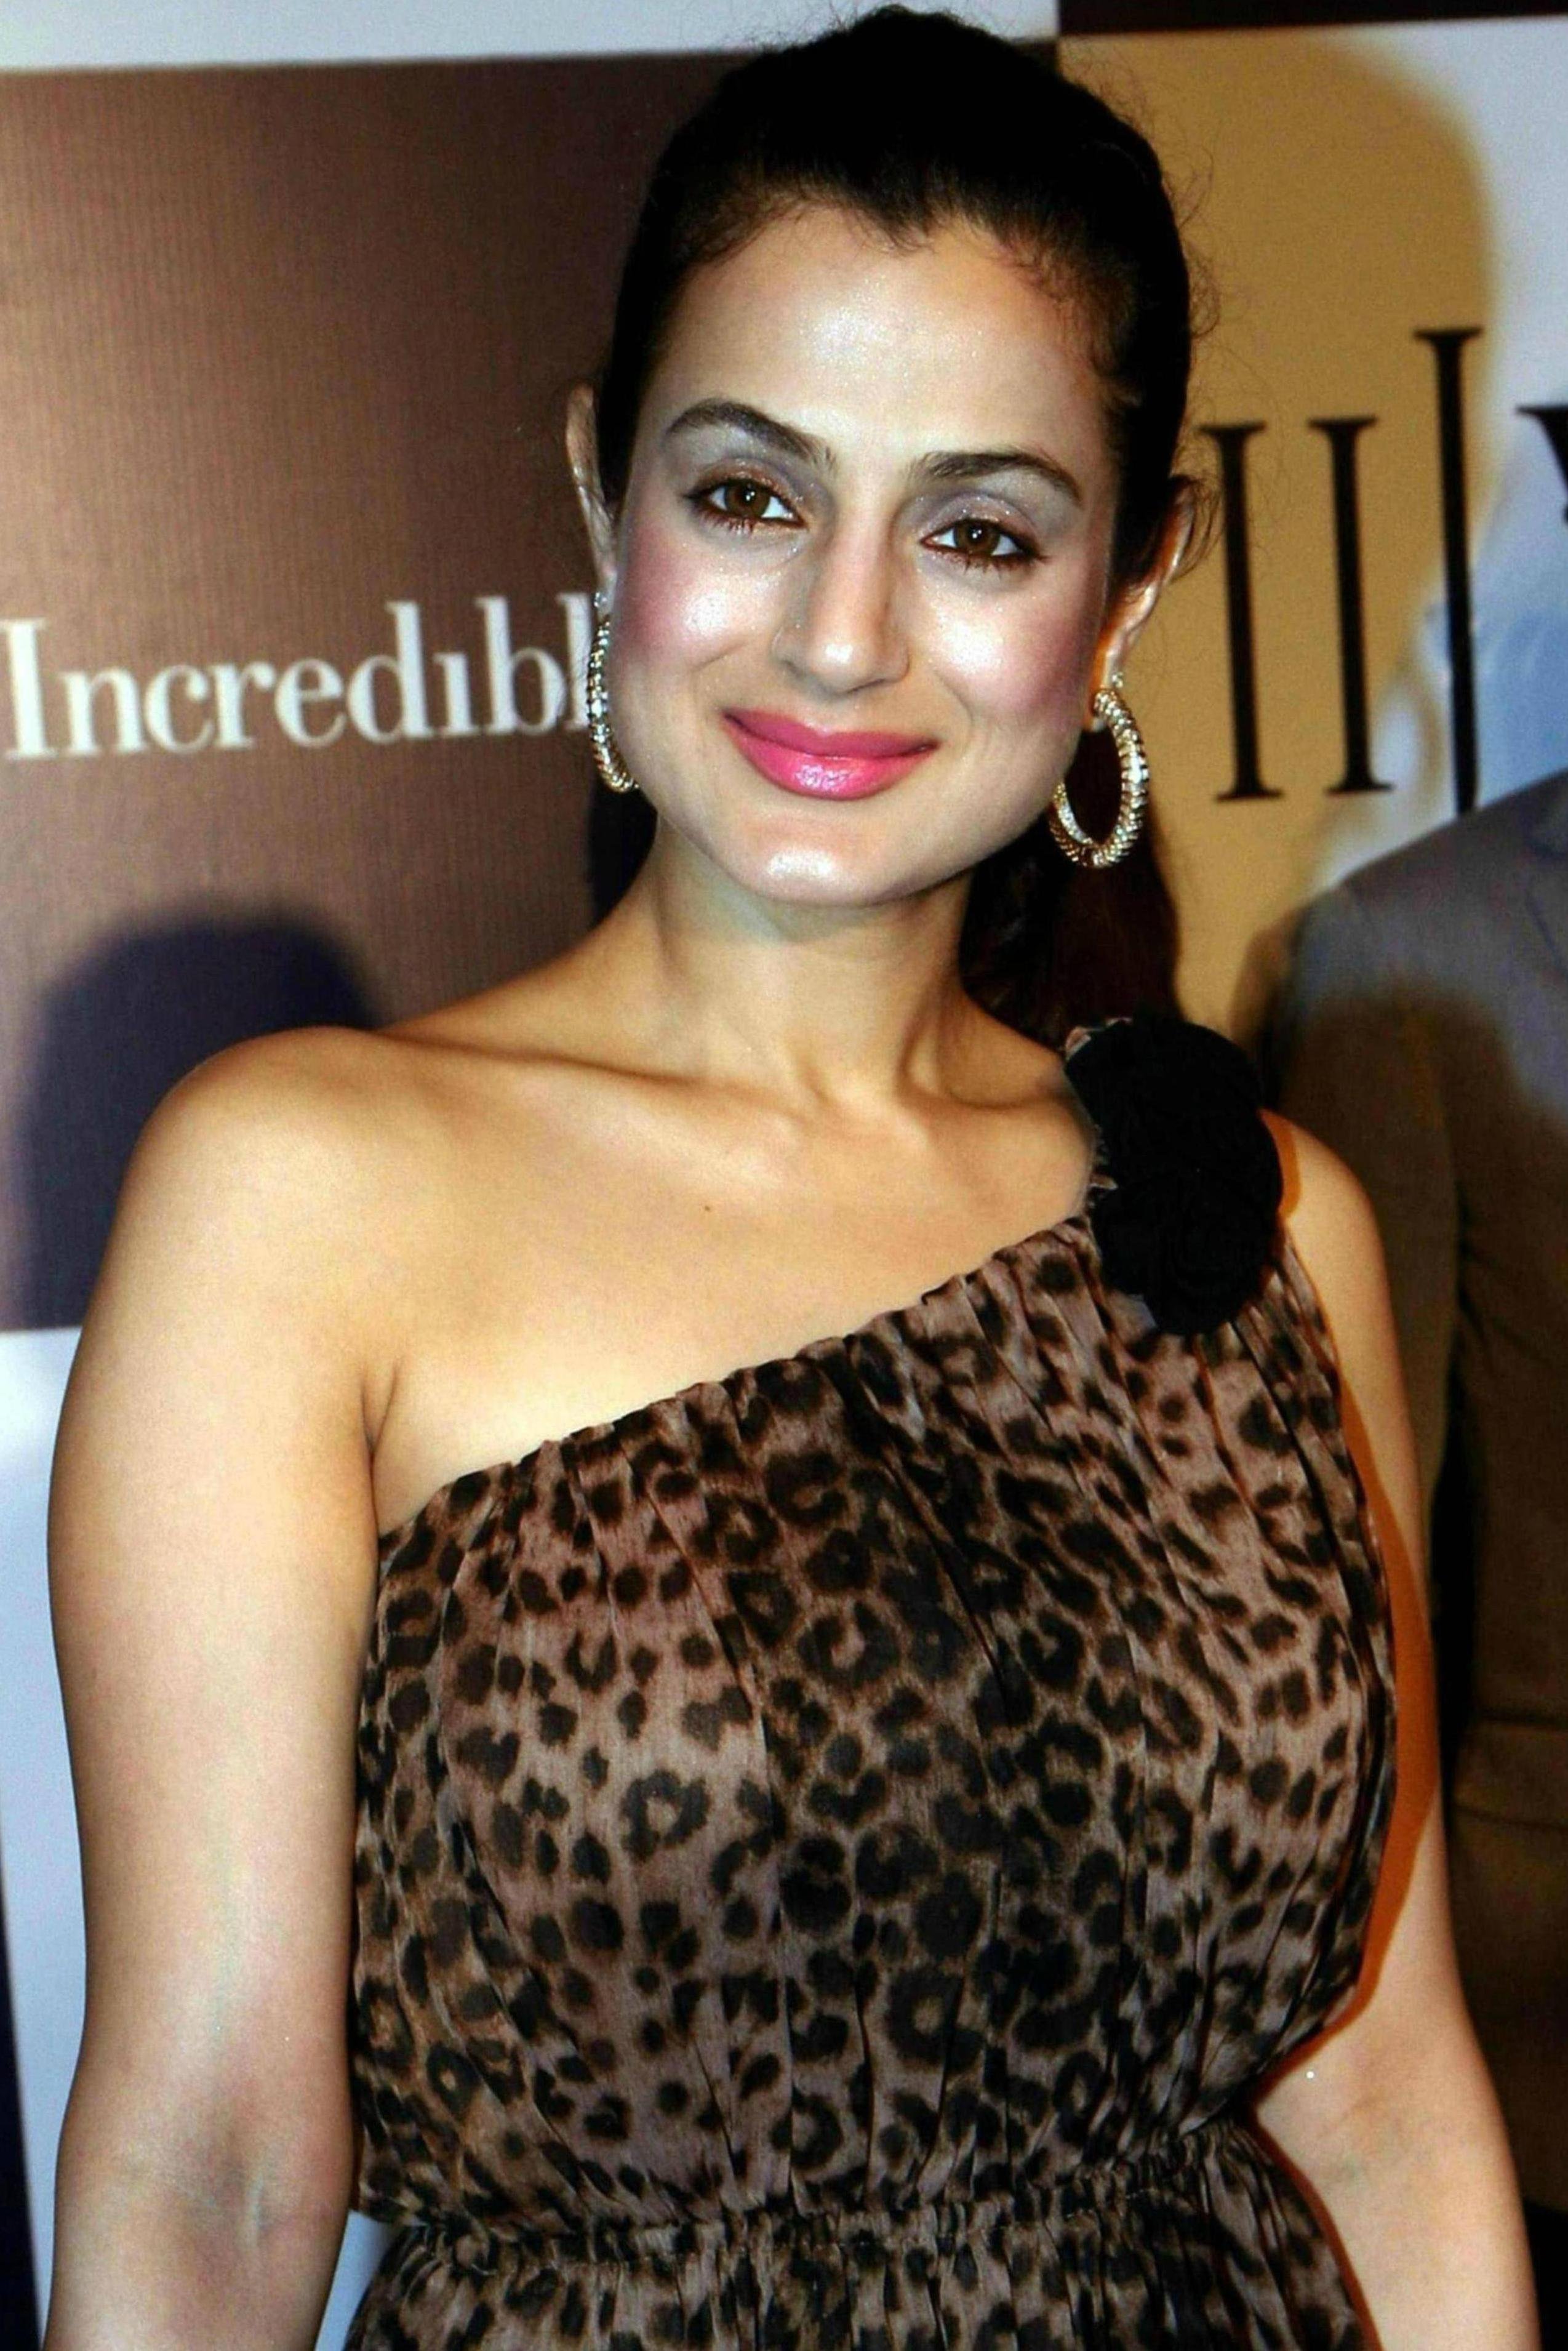 Ameesha Patel High Quality Pictures And Bio Graphy AdmOI1Rx